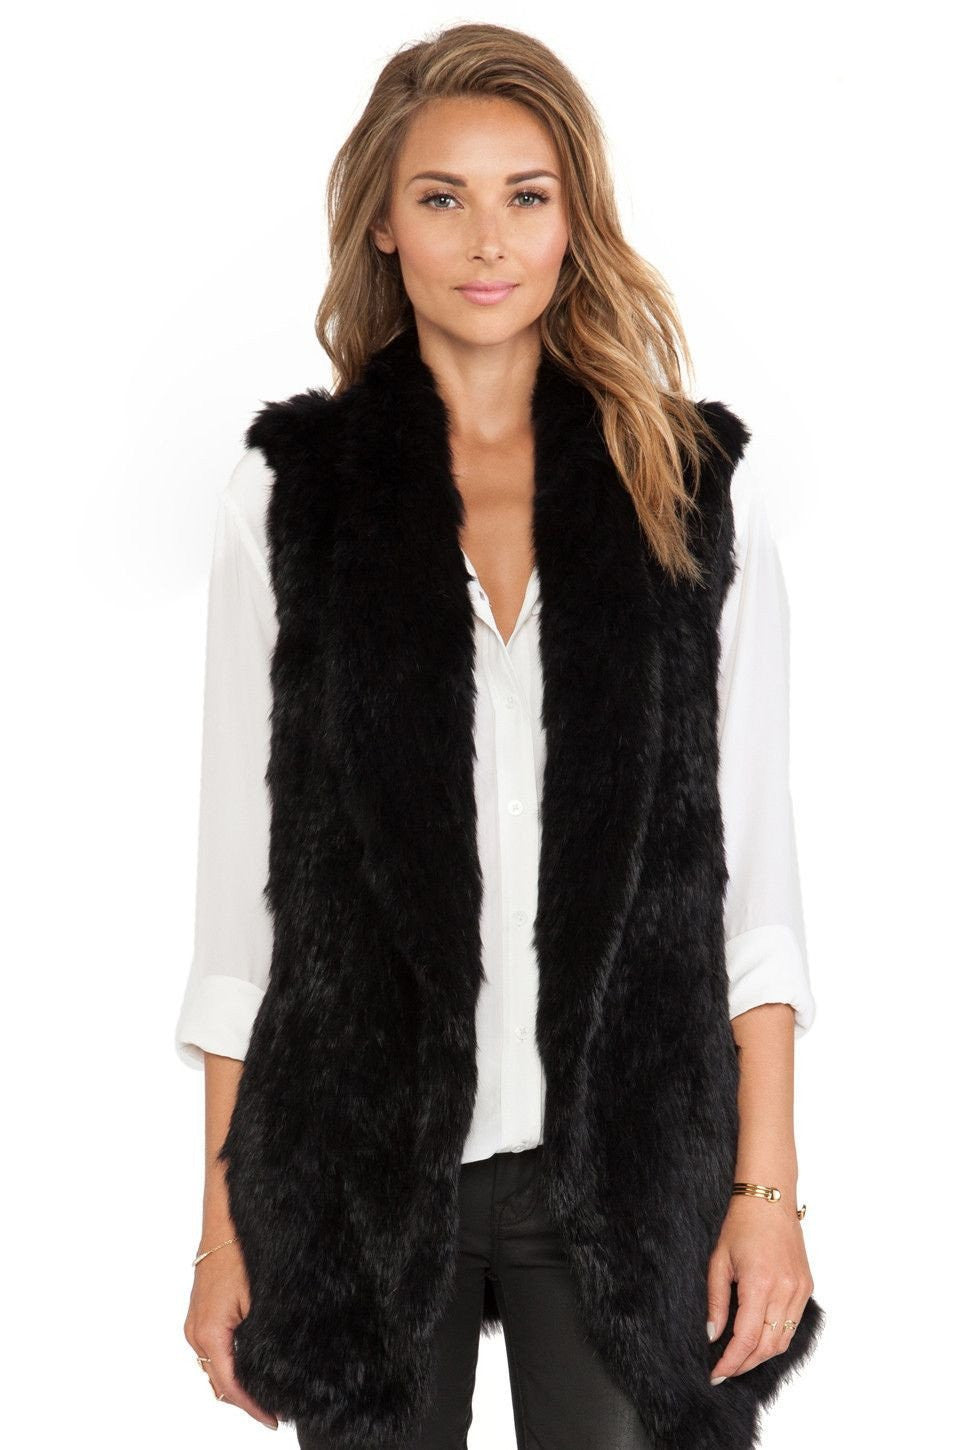 The Luxury Fur Company Knitted Rabbit Draped Vest in Black - Lookbook Boutique